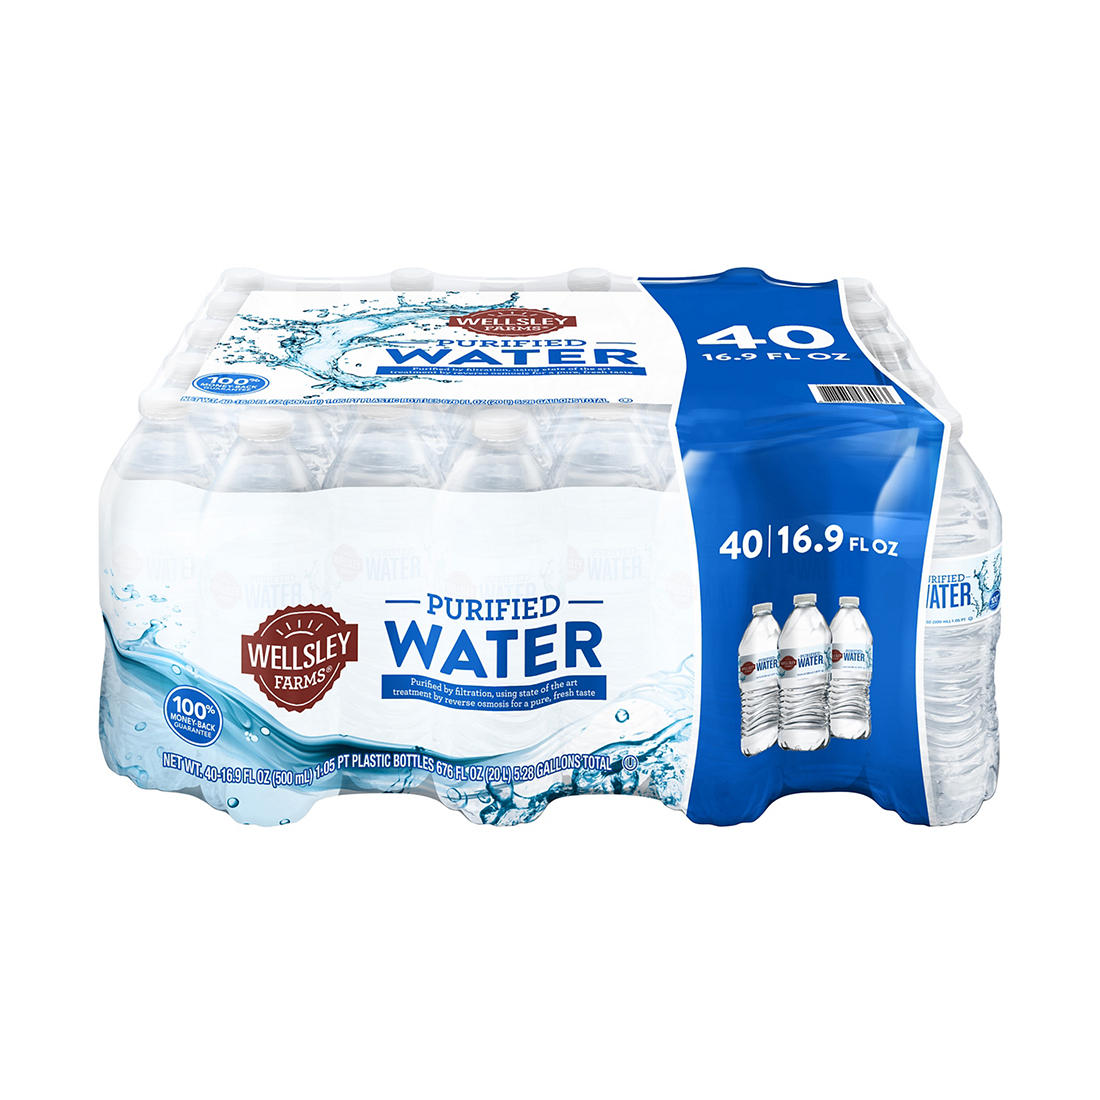 Wellsley Farms Purified Water, 40 pk /16 9 oz